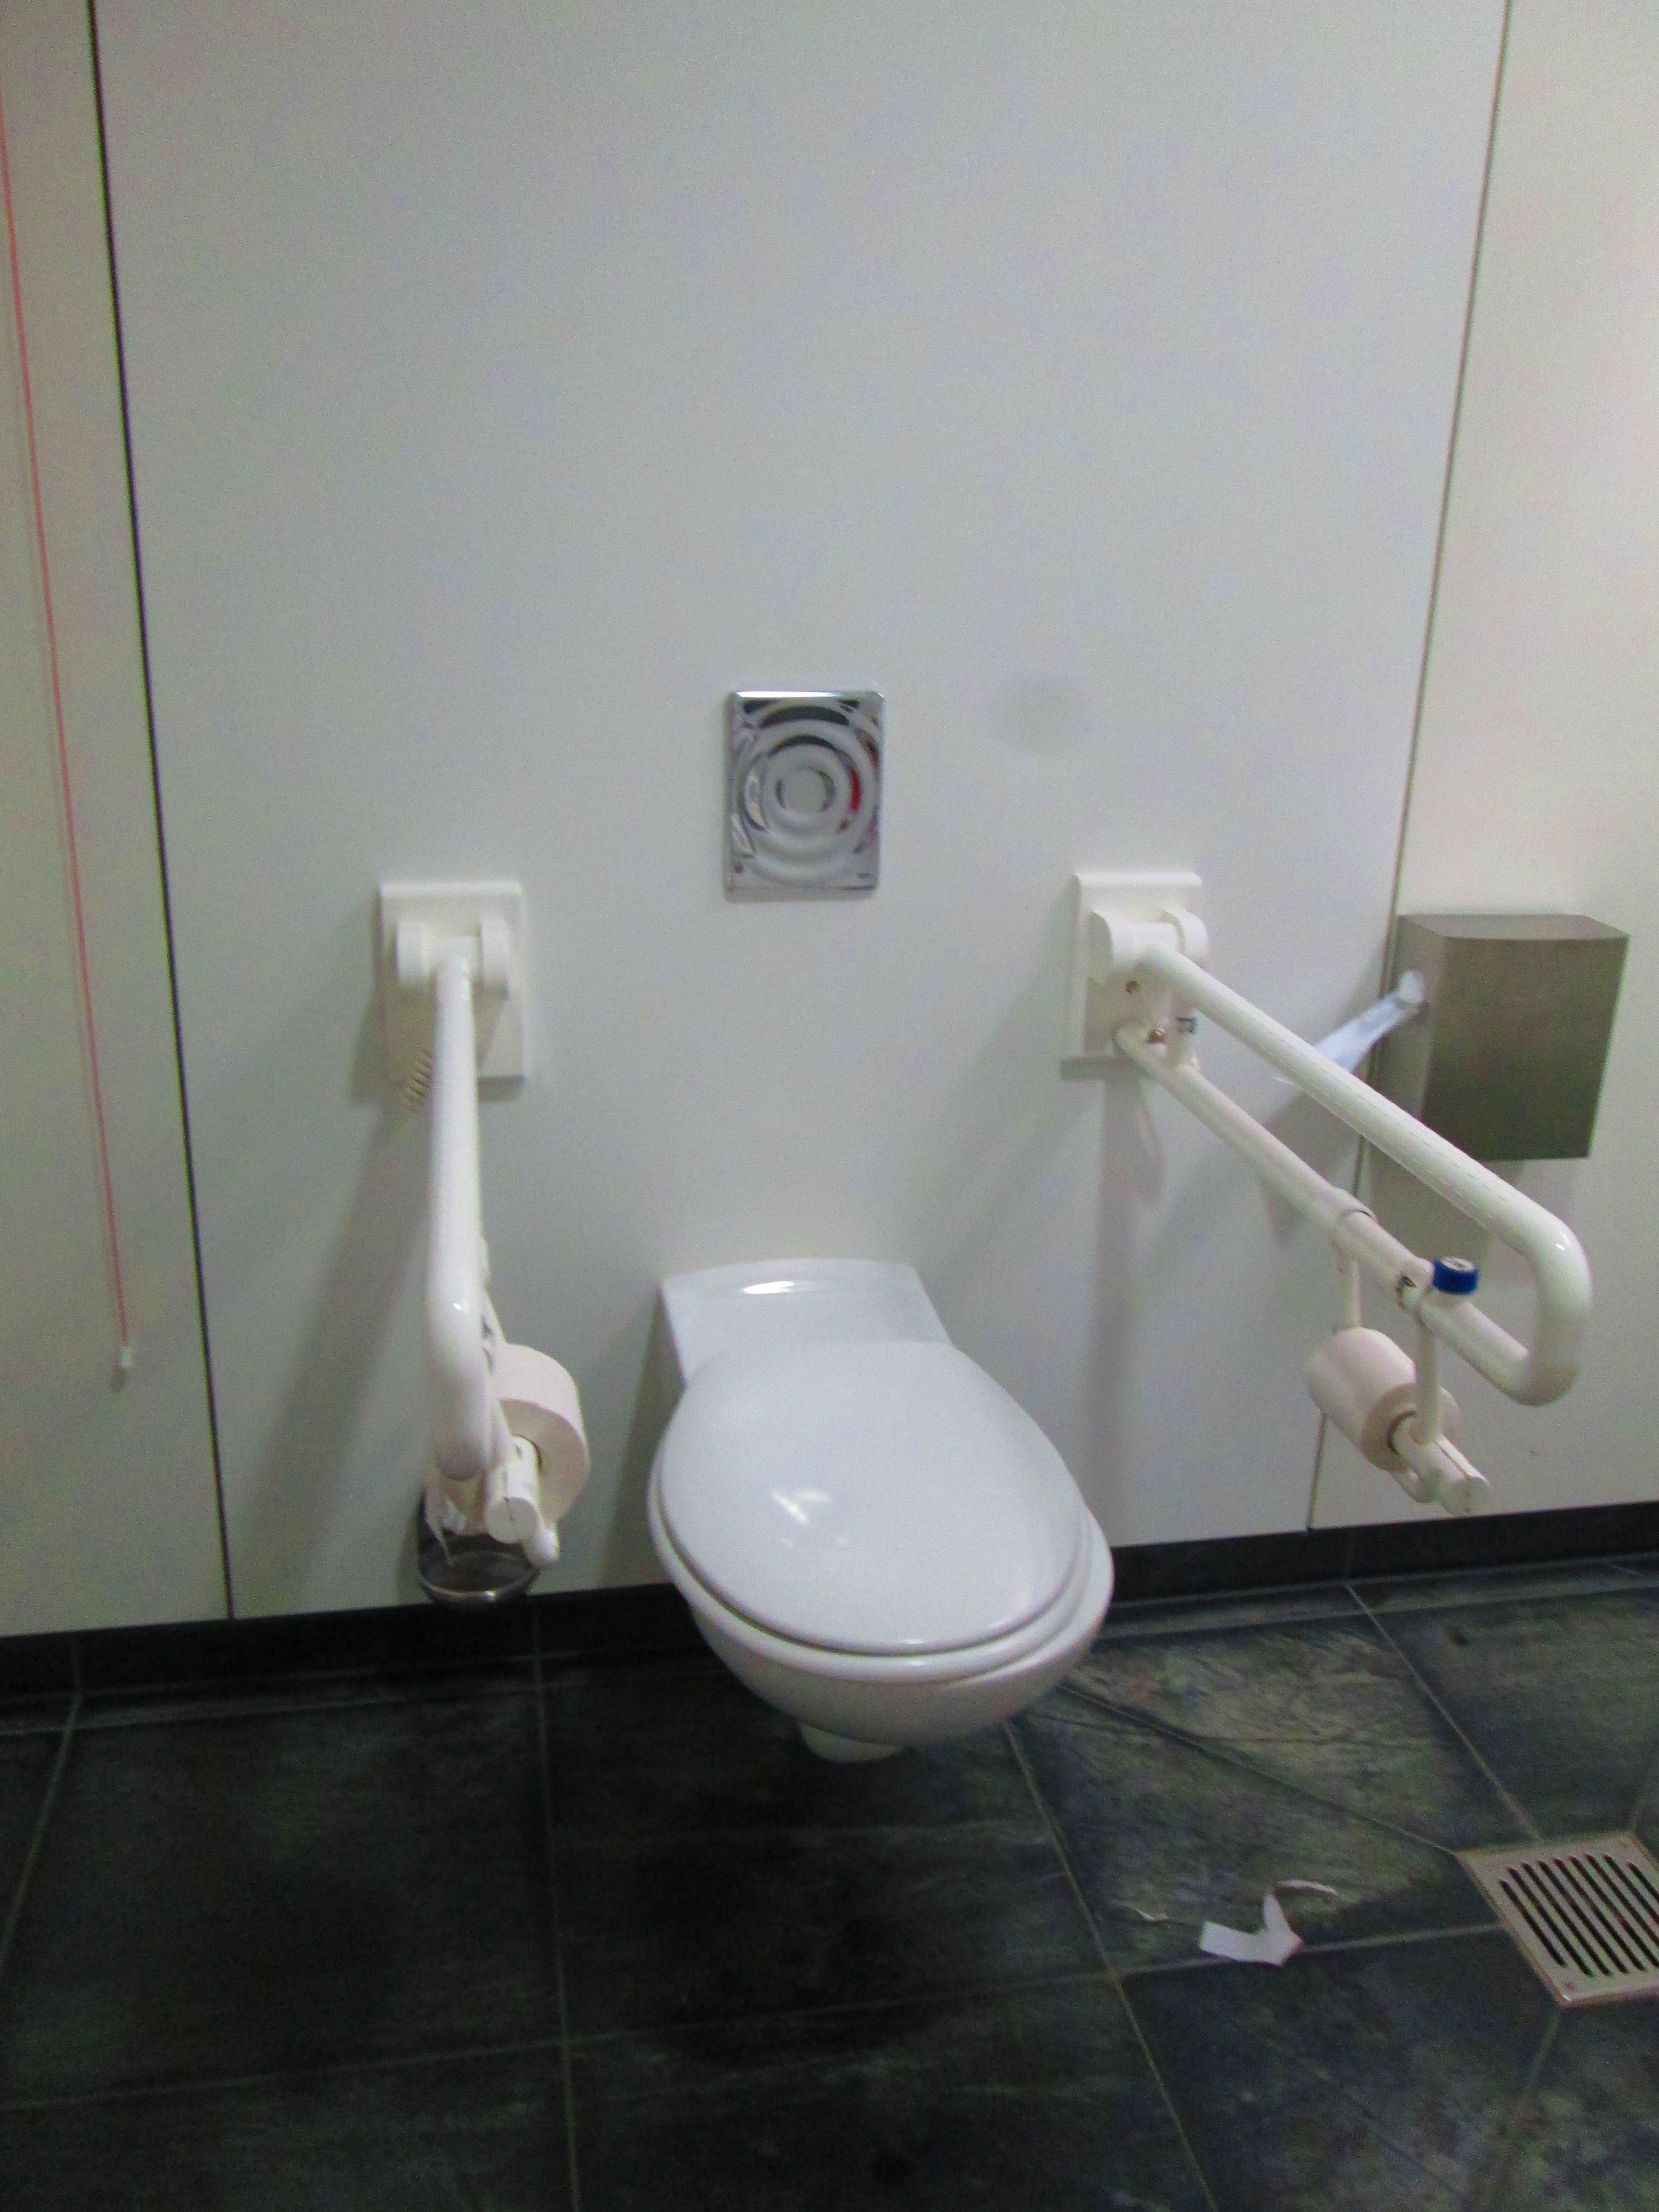 Shower Grab Bars Rona accessible #restroom in #german museum, complete with drop down